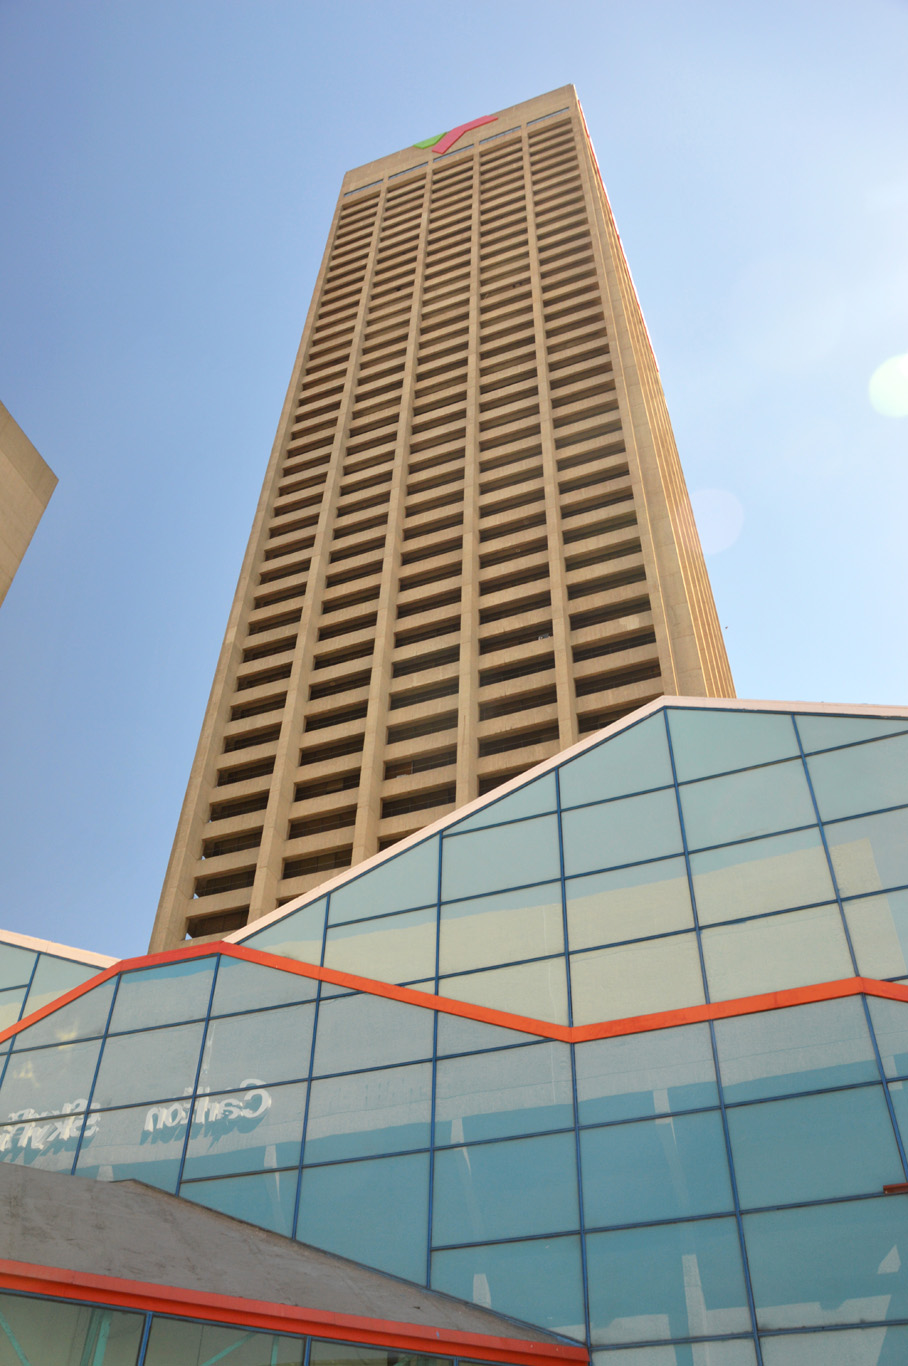 Carlton Center Tower - the tallest building in Africa